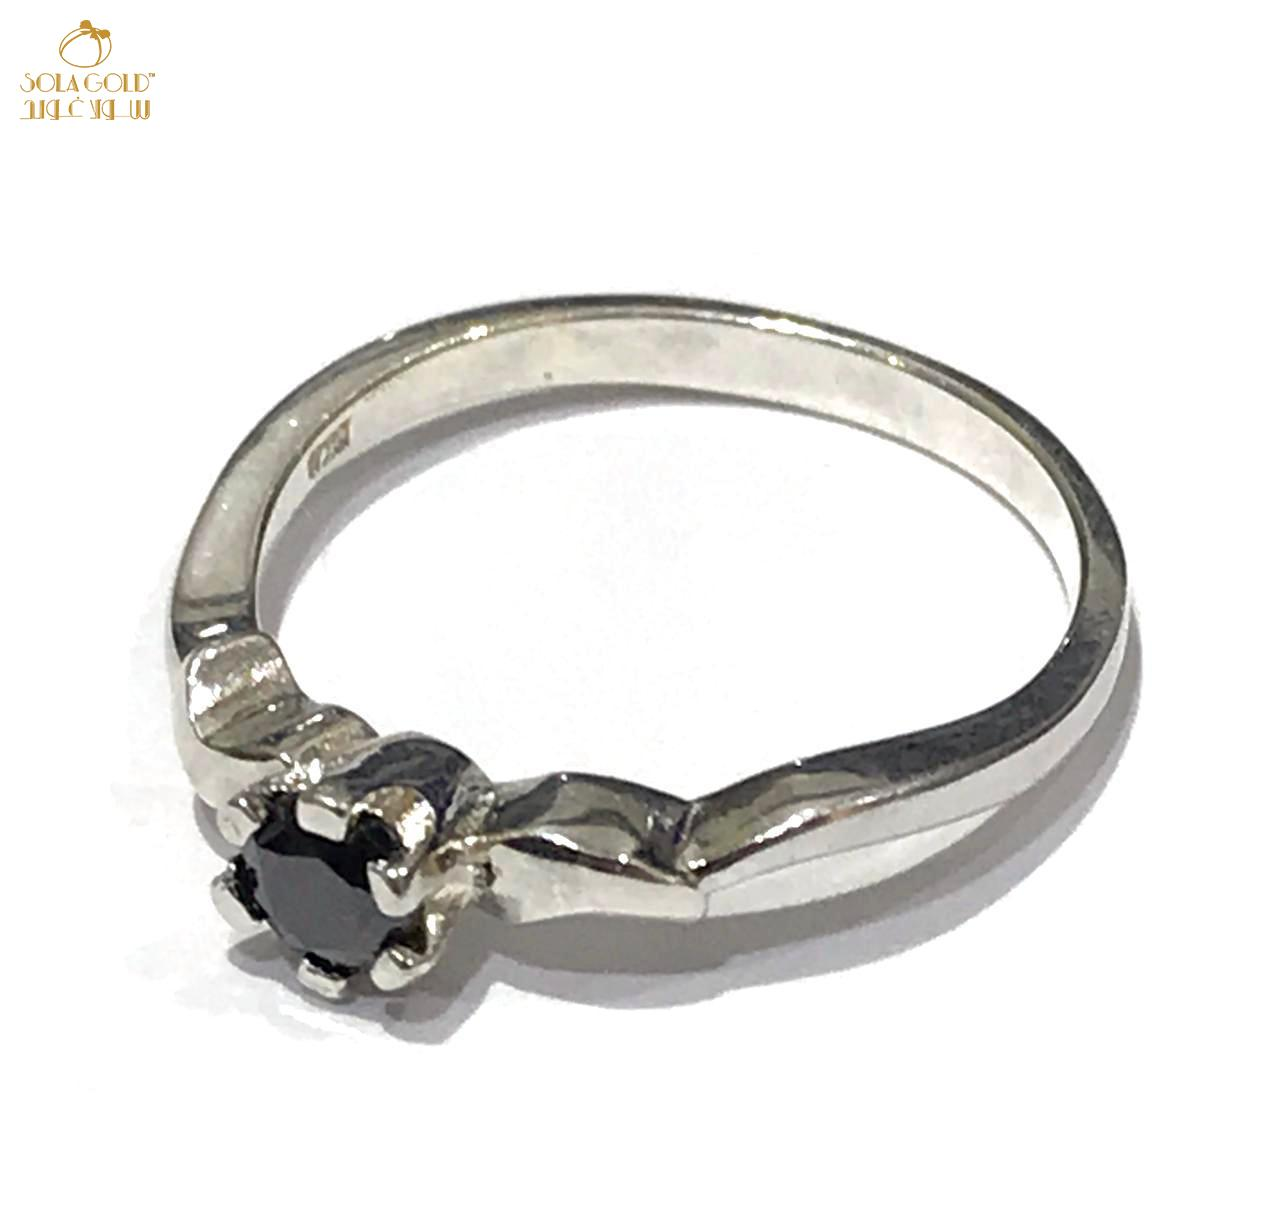 REAL ITALIAN SILVER RING 925 (SIZE: 6.6)